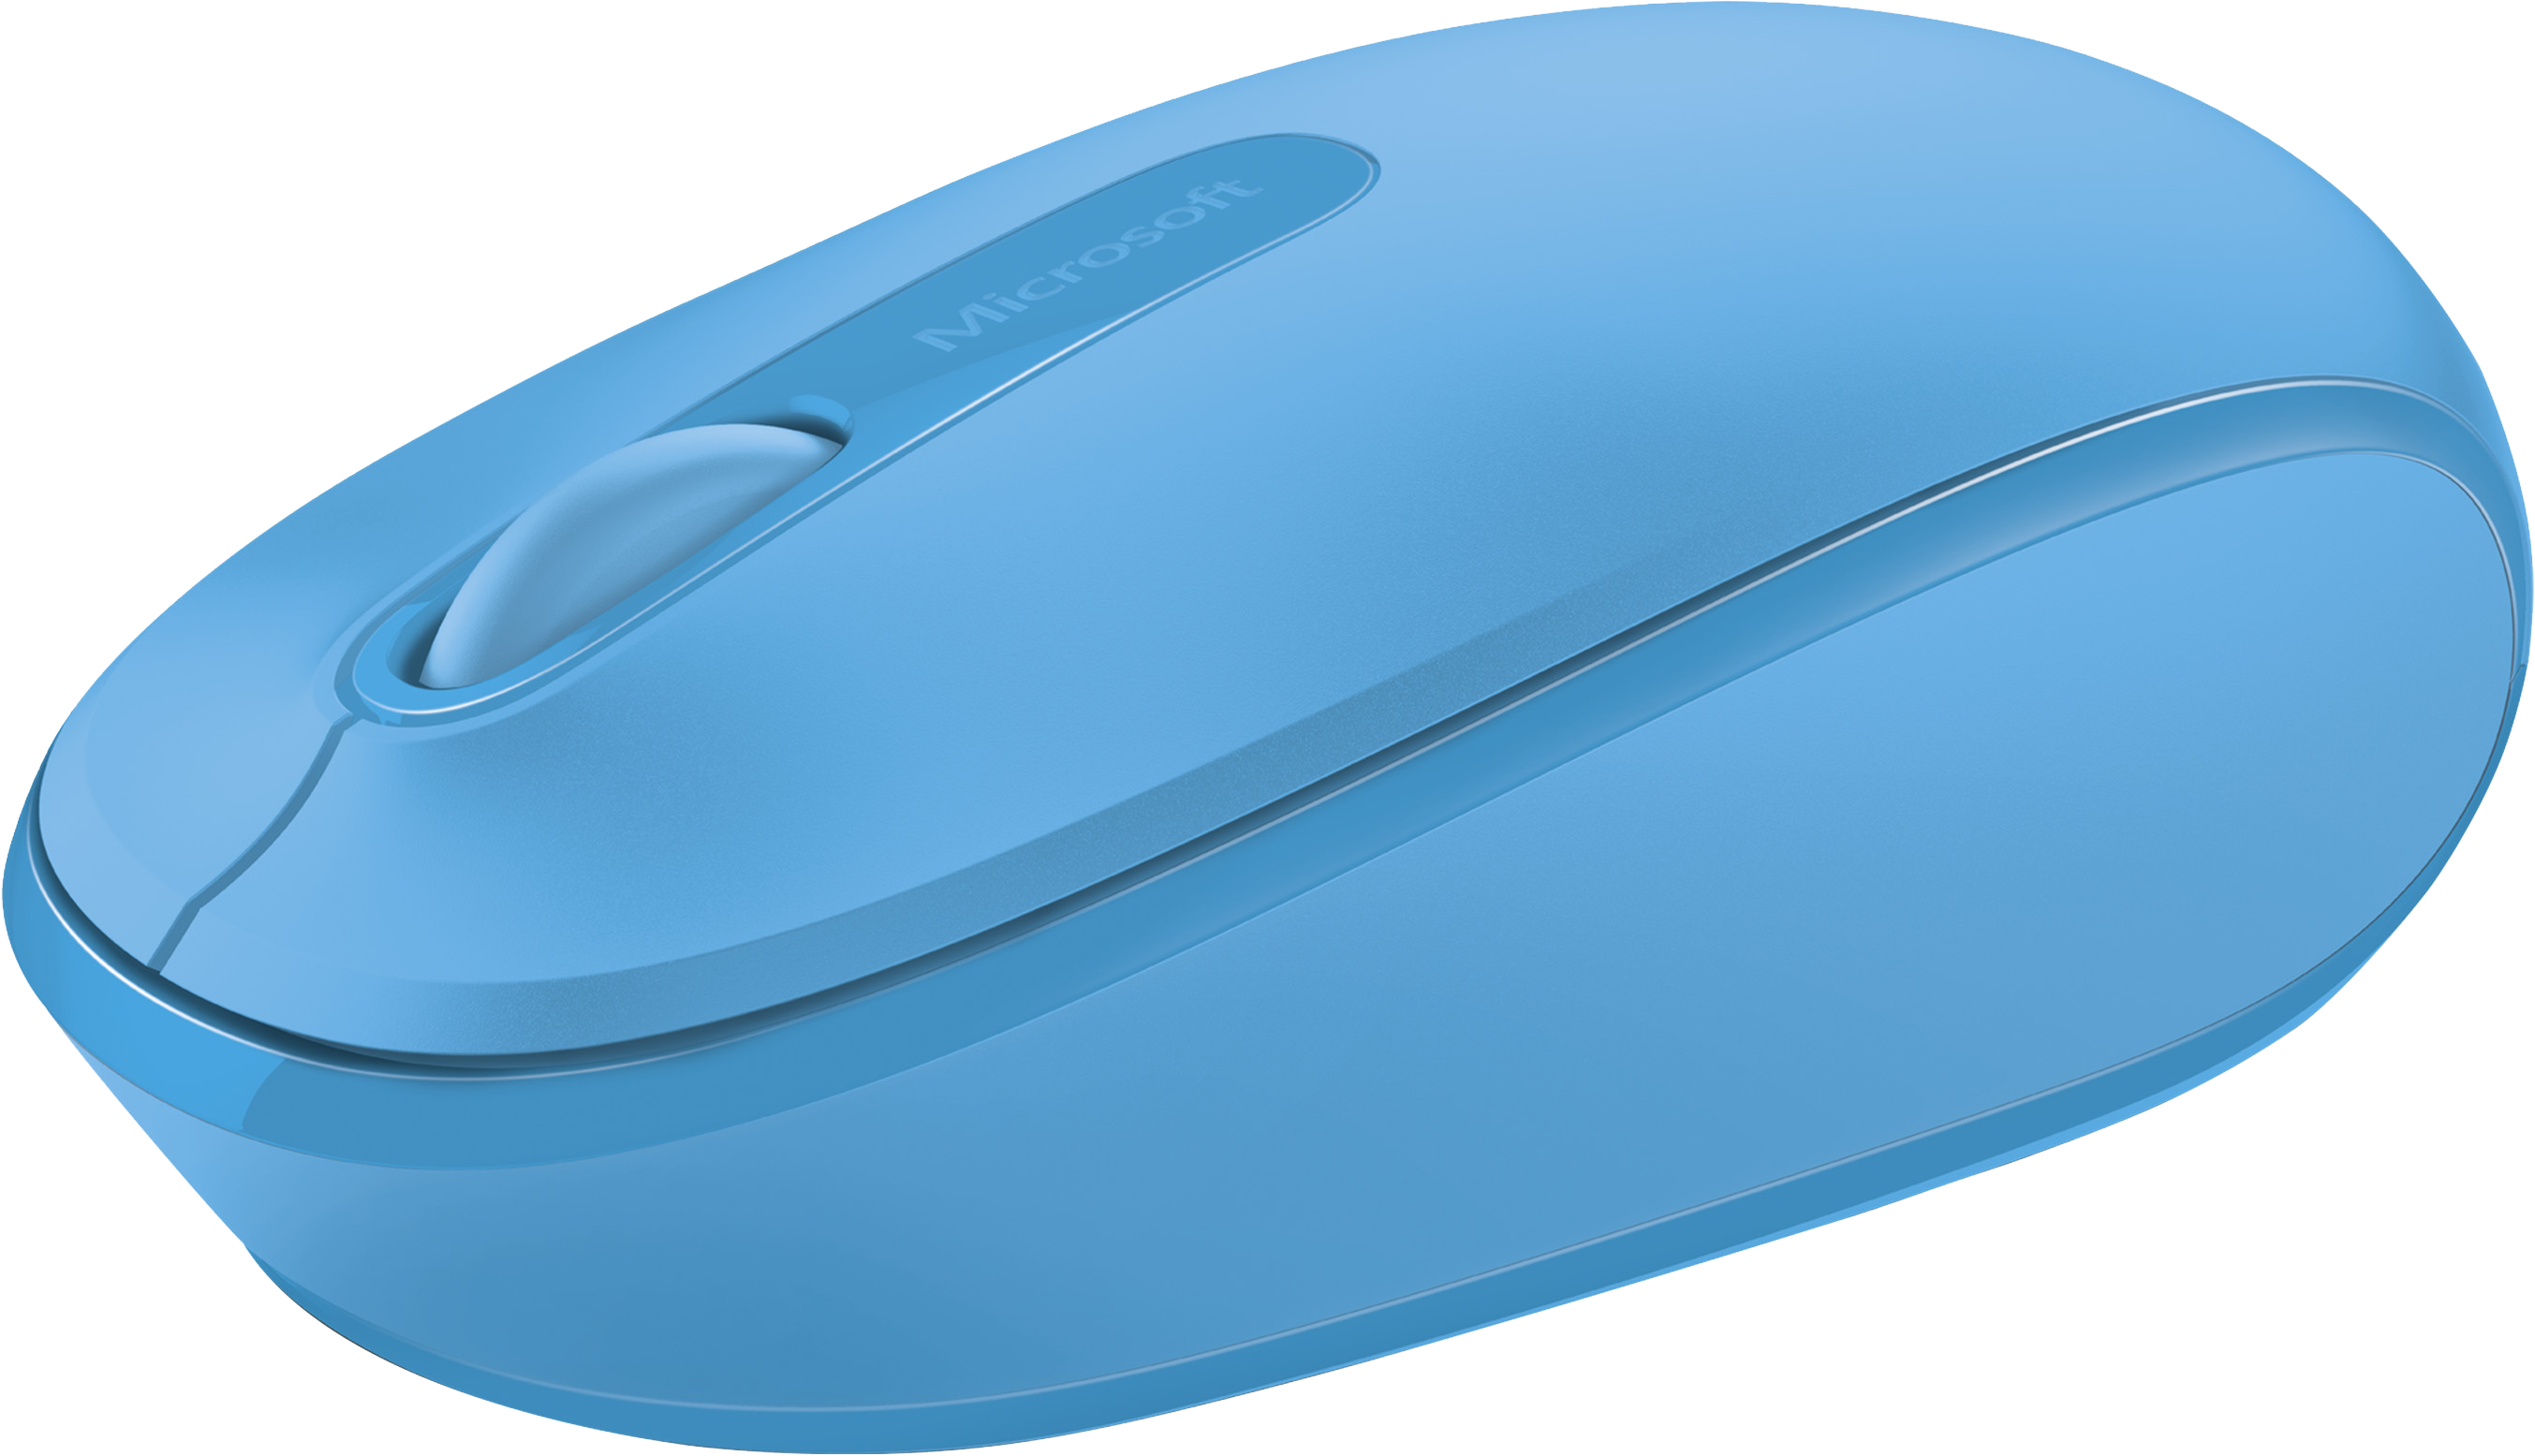 Microsoft Wireless Mobile Mouse 1850 (Cyan Blue)